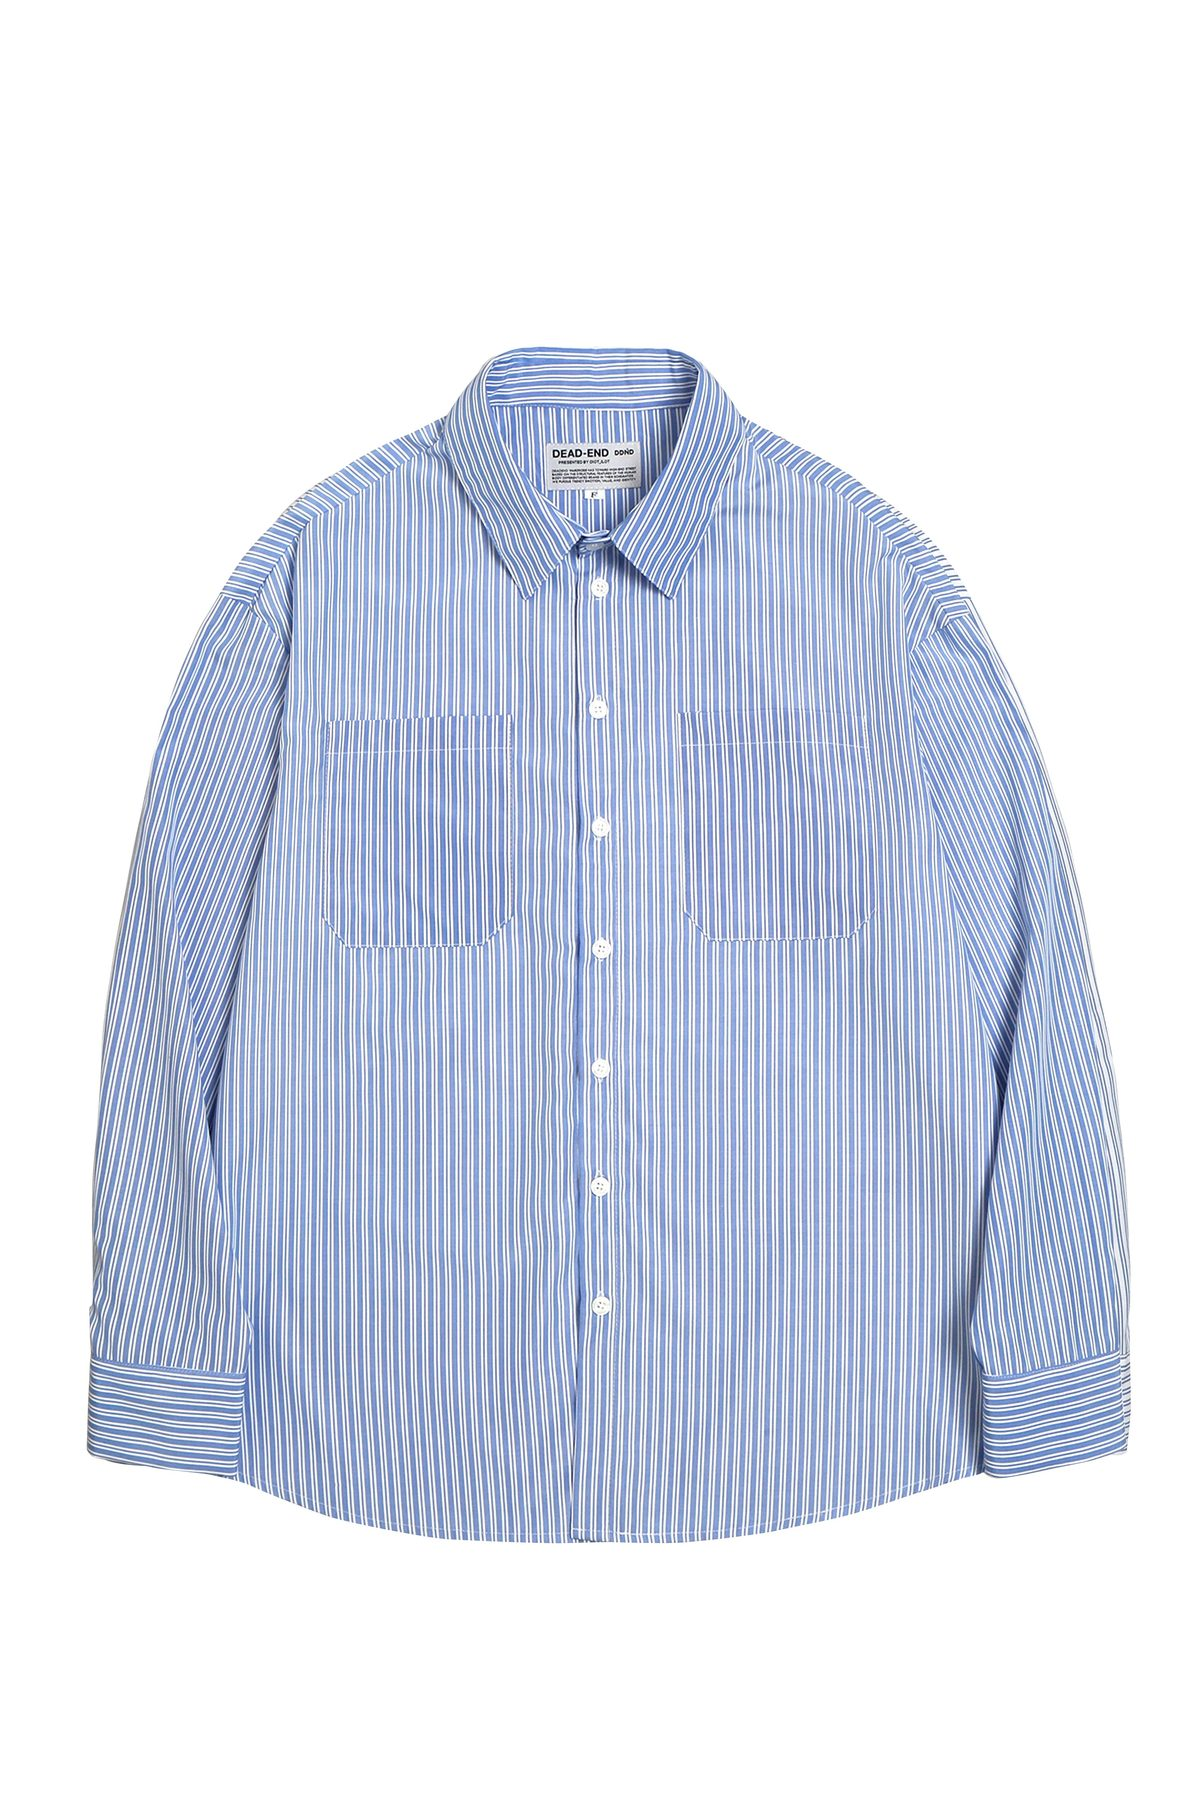 BLUE STRIPE QUOTE SHIRTS